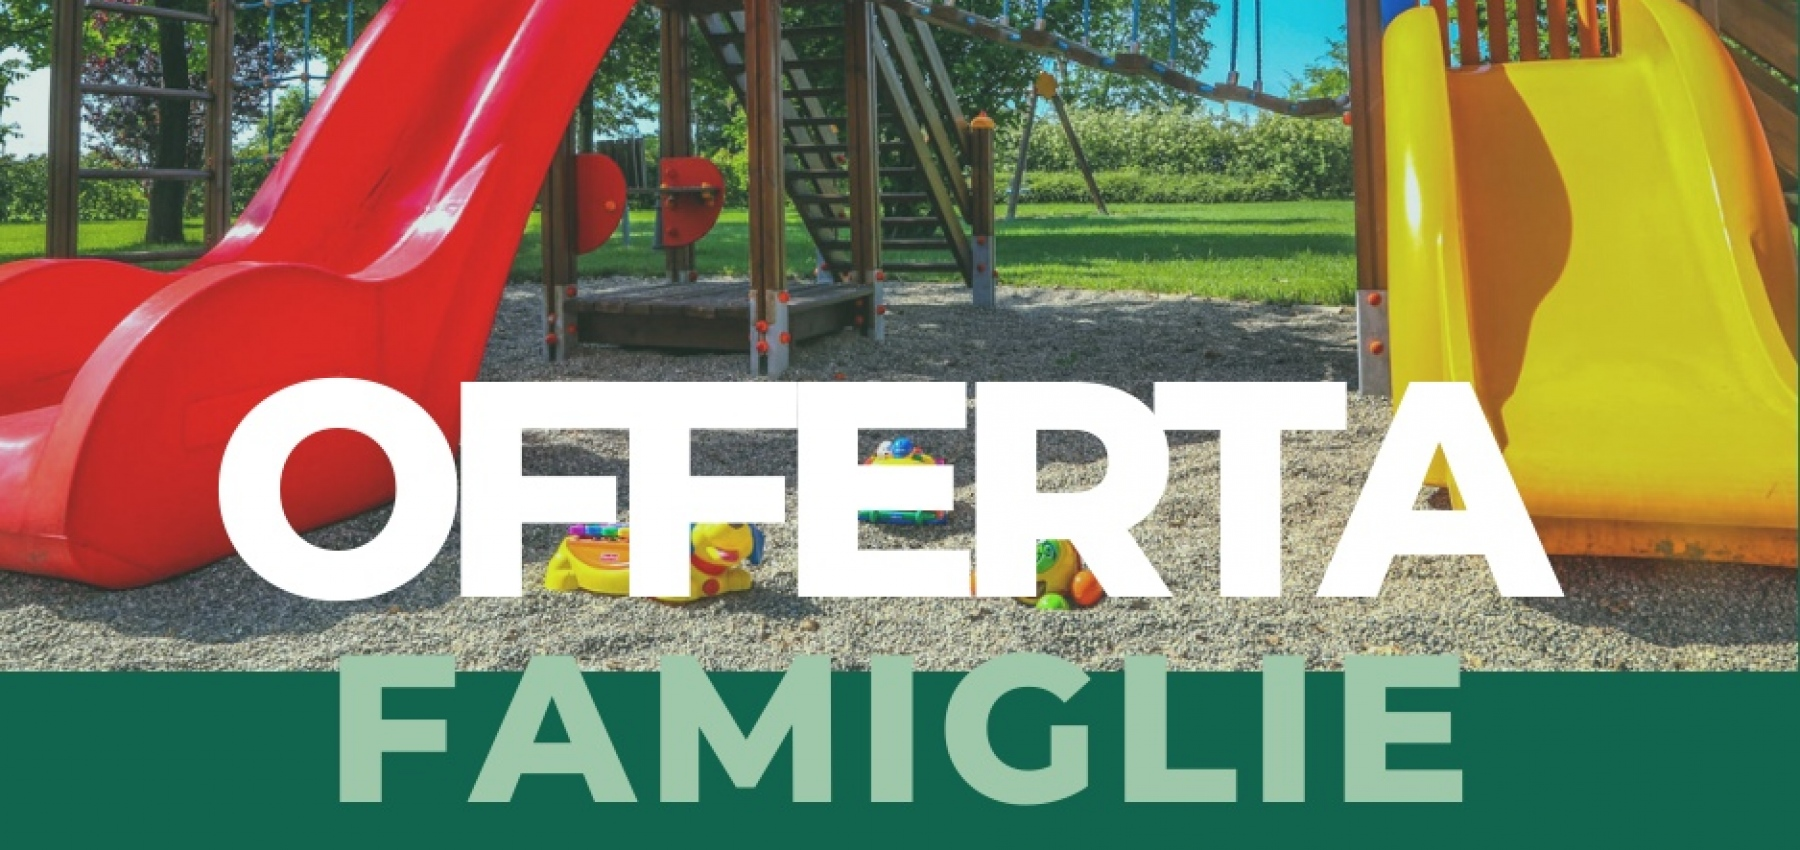 Speciale Famiglie